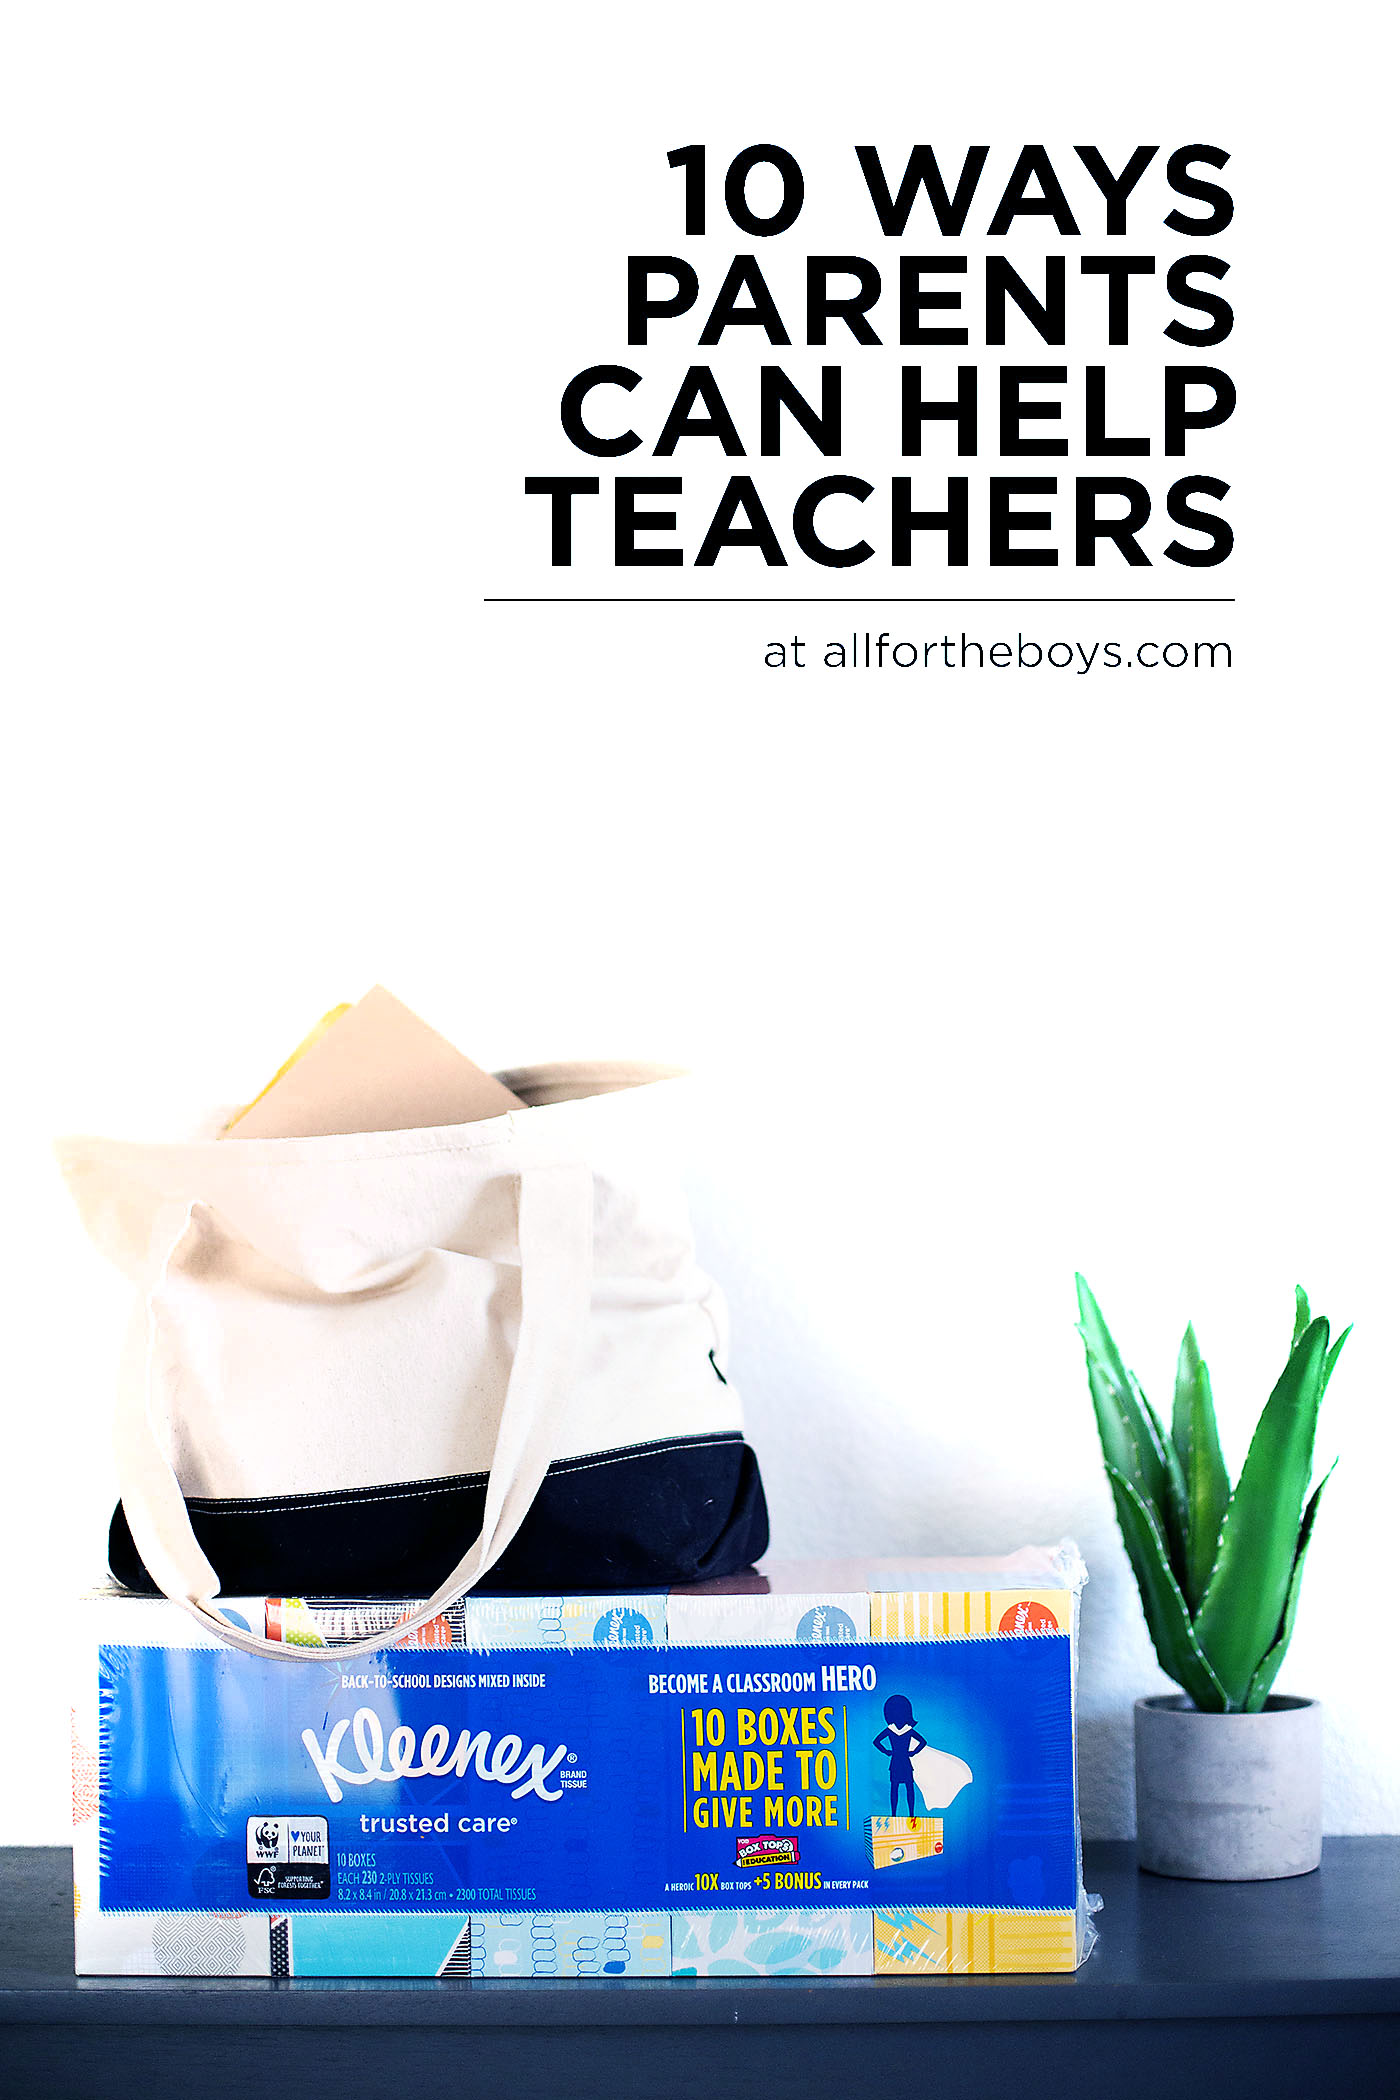 10 ways parents can help teachers